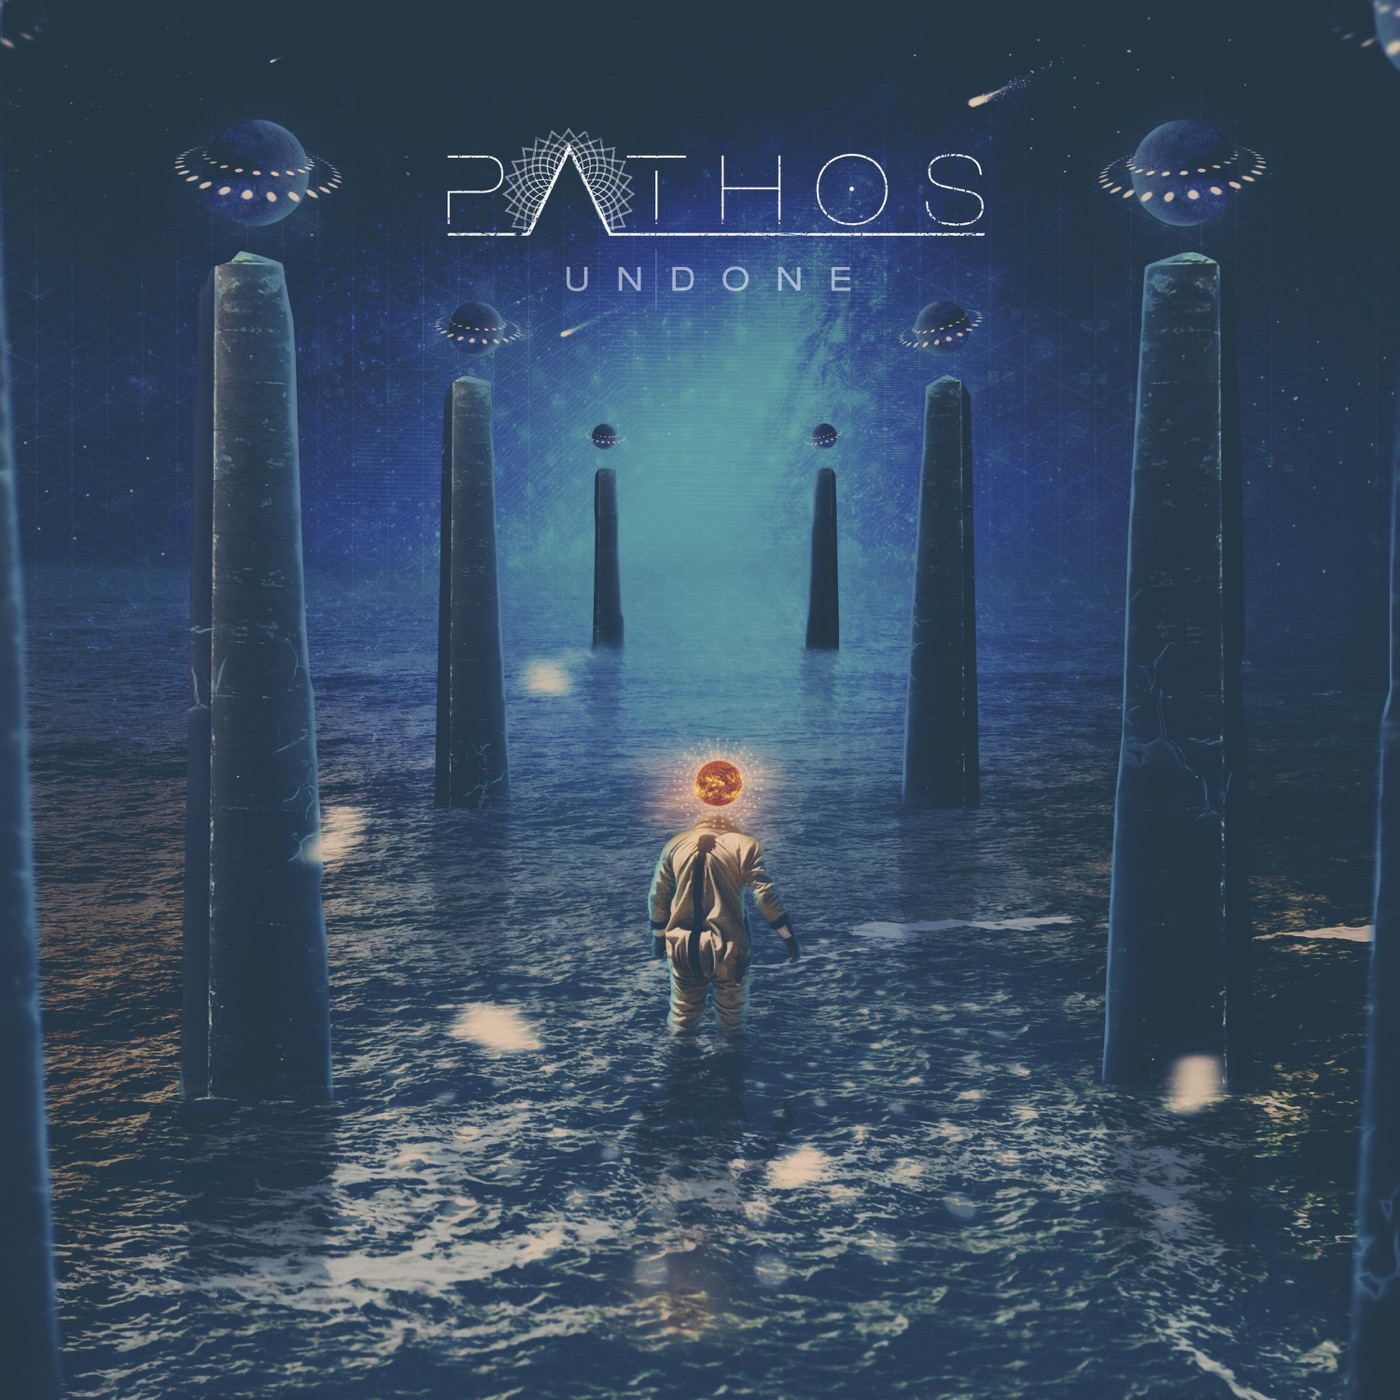 Pathos - Un|Done [single] (2016)